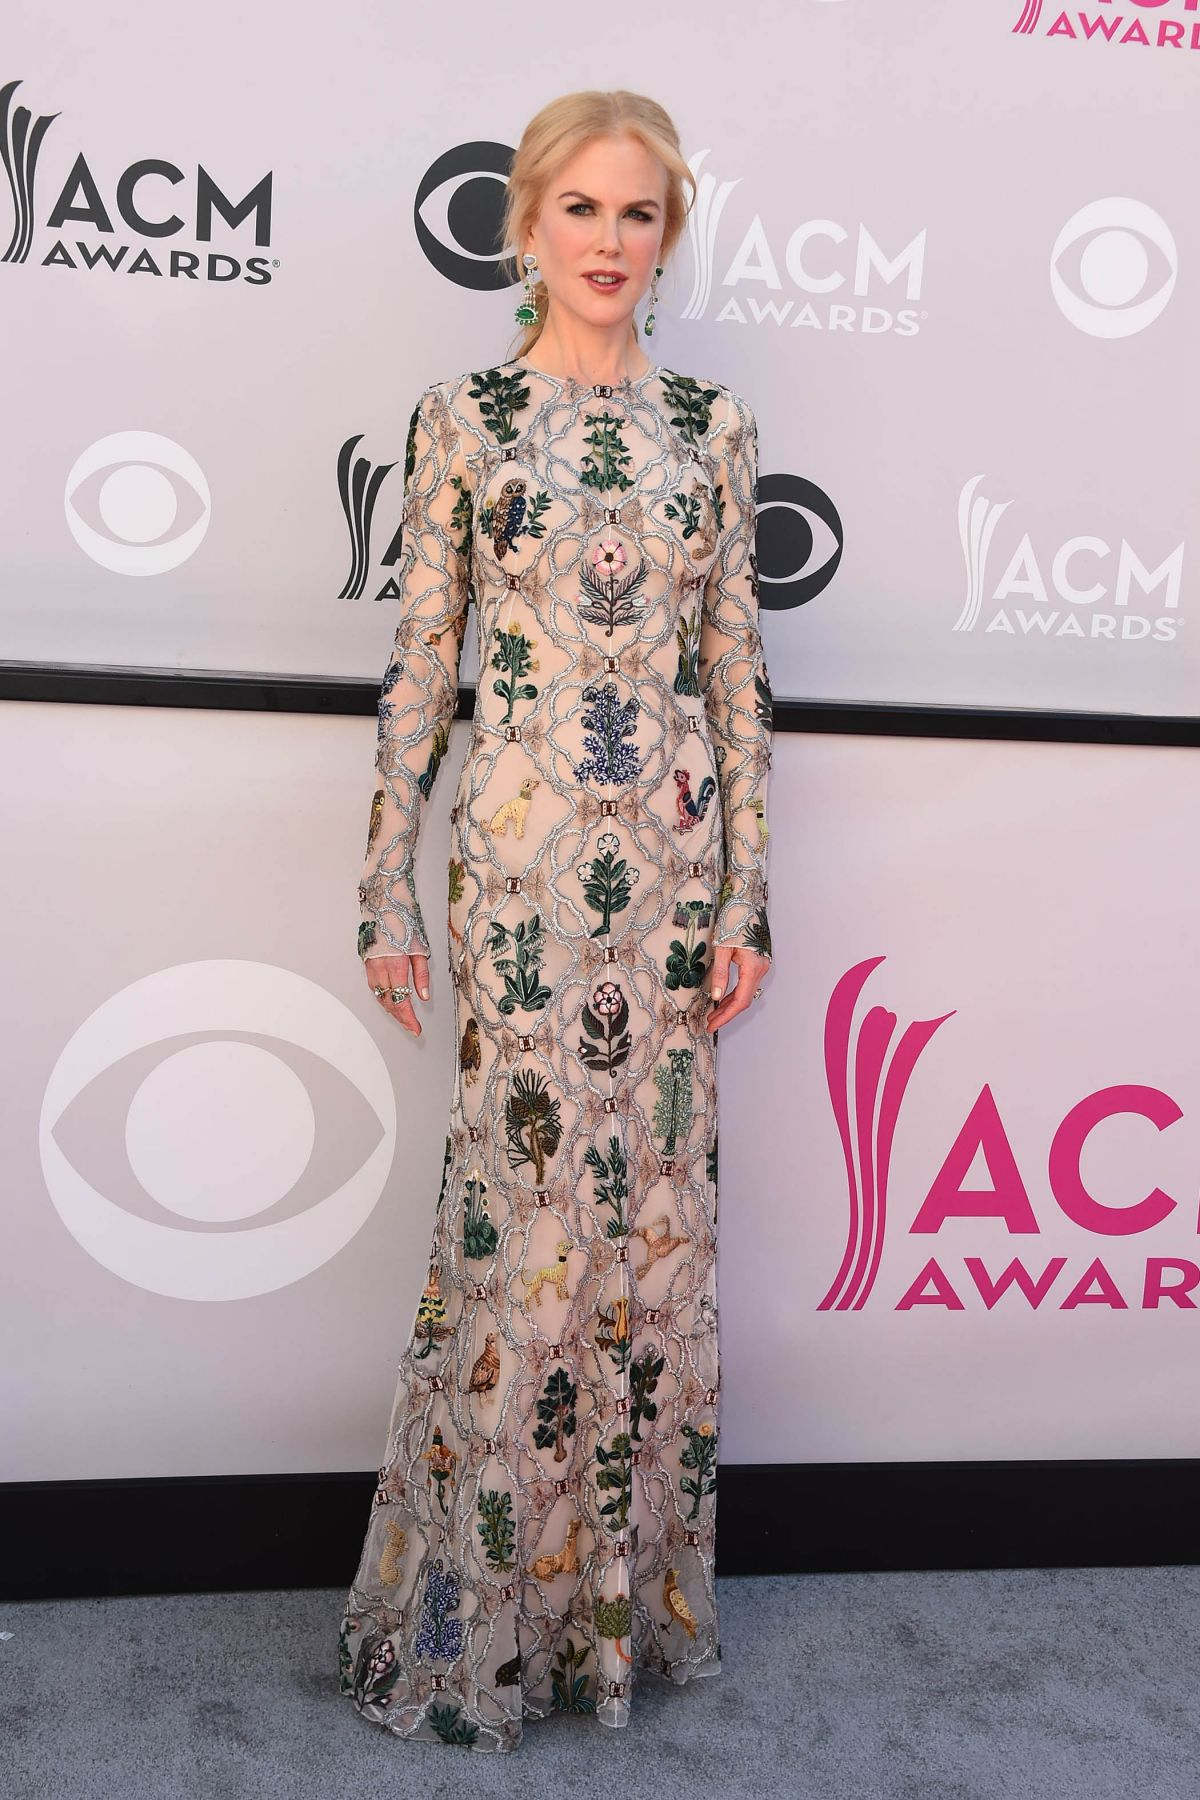 Nicole kidman academy of country music awards 2019 in las vegas naked (13 photo), Bikini Celebrity pics